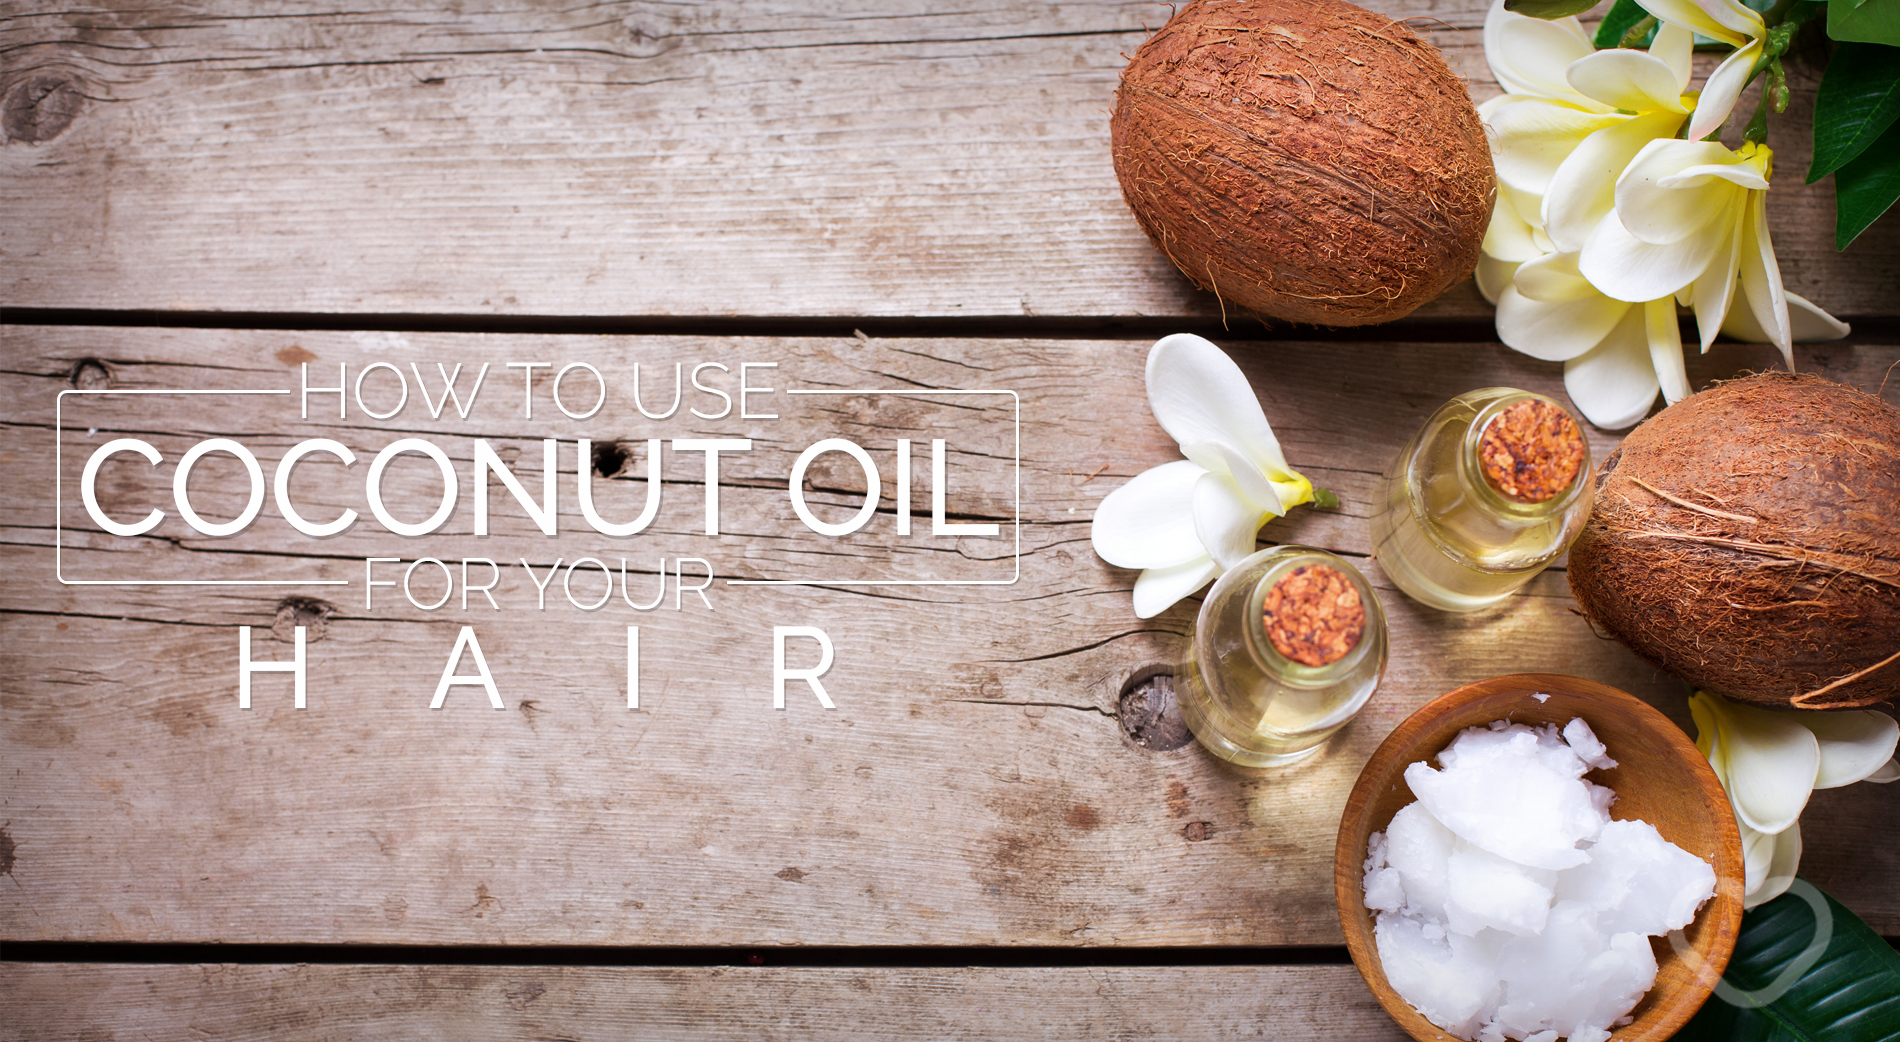 How To Use Coconut Oil For Your Hair - How to use coconut oil on hair